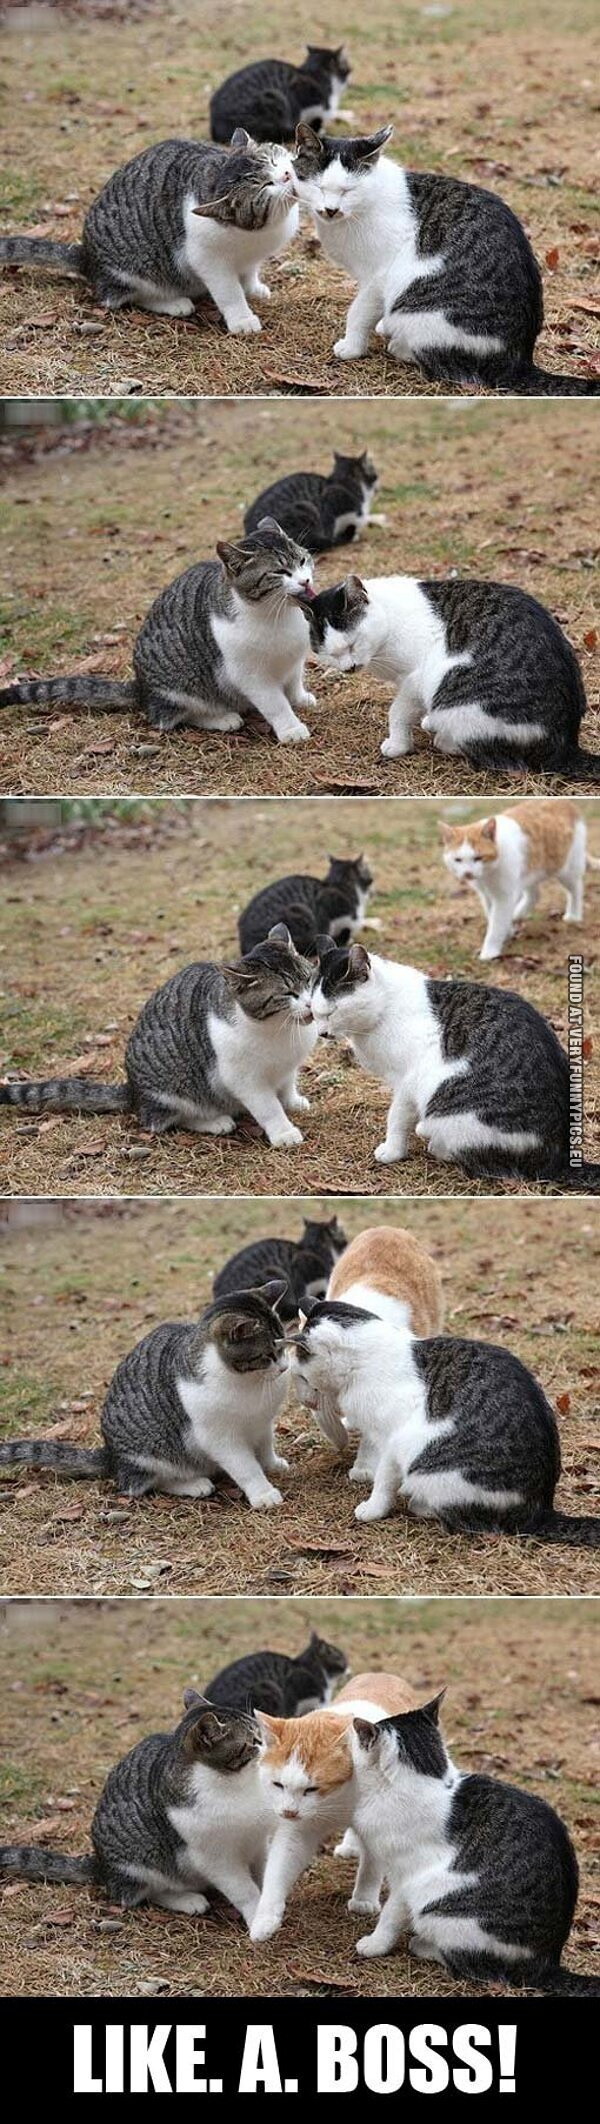 Funny Picture - Cat goes between two other cats - Like a boss